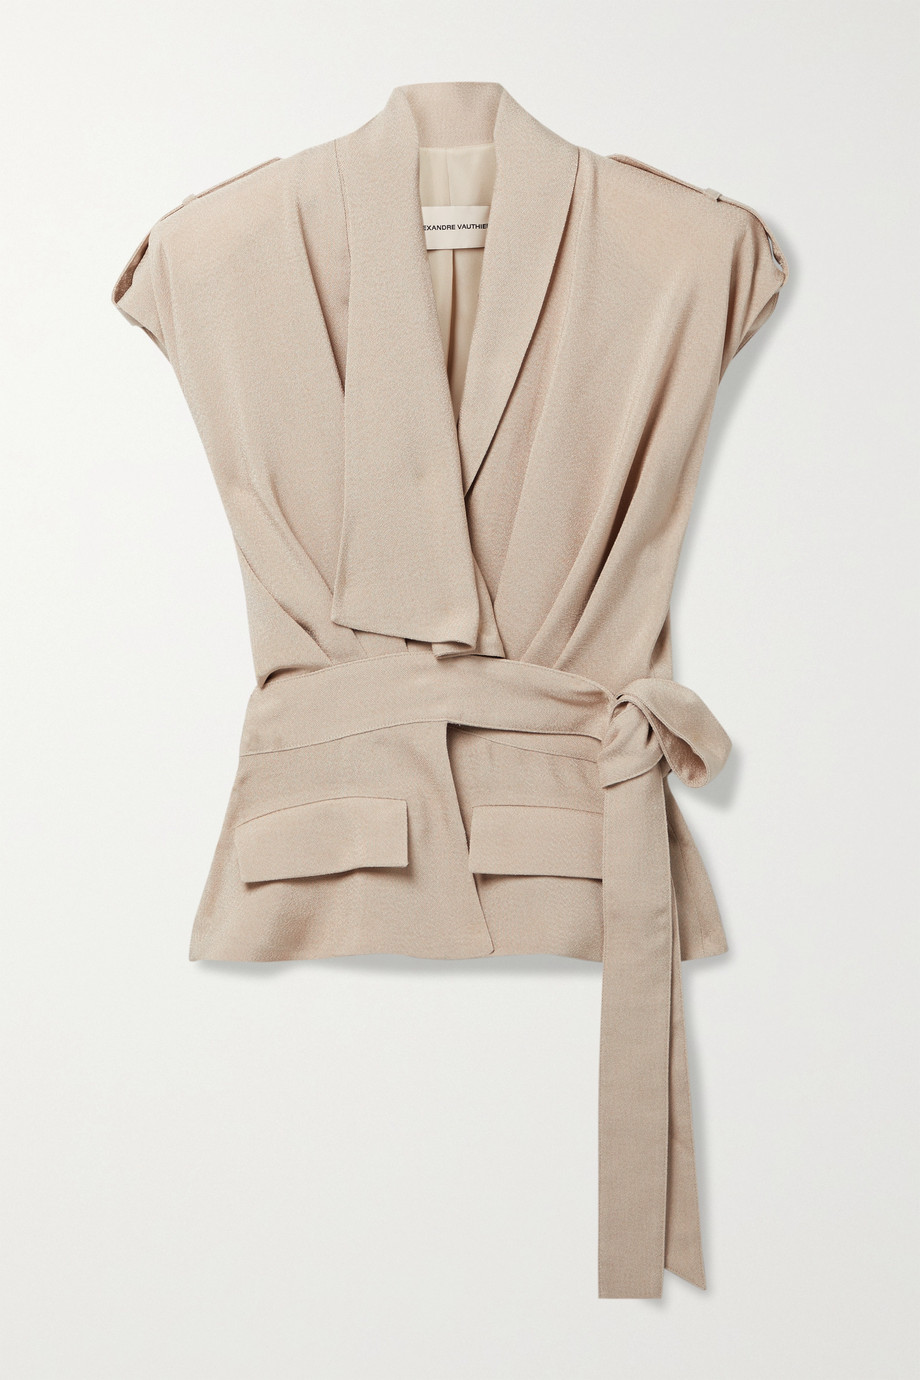 Alexandre Vauthier Draped belted woven vest